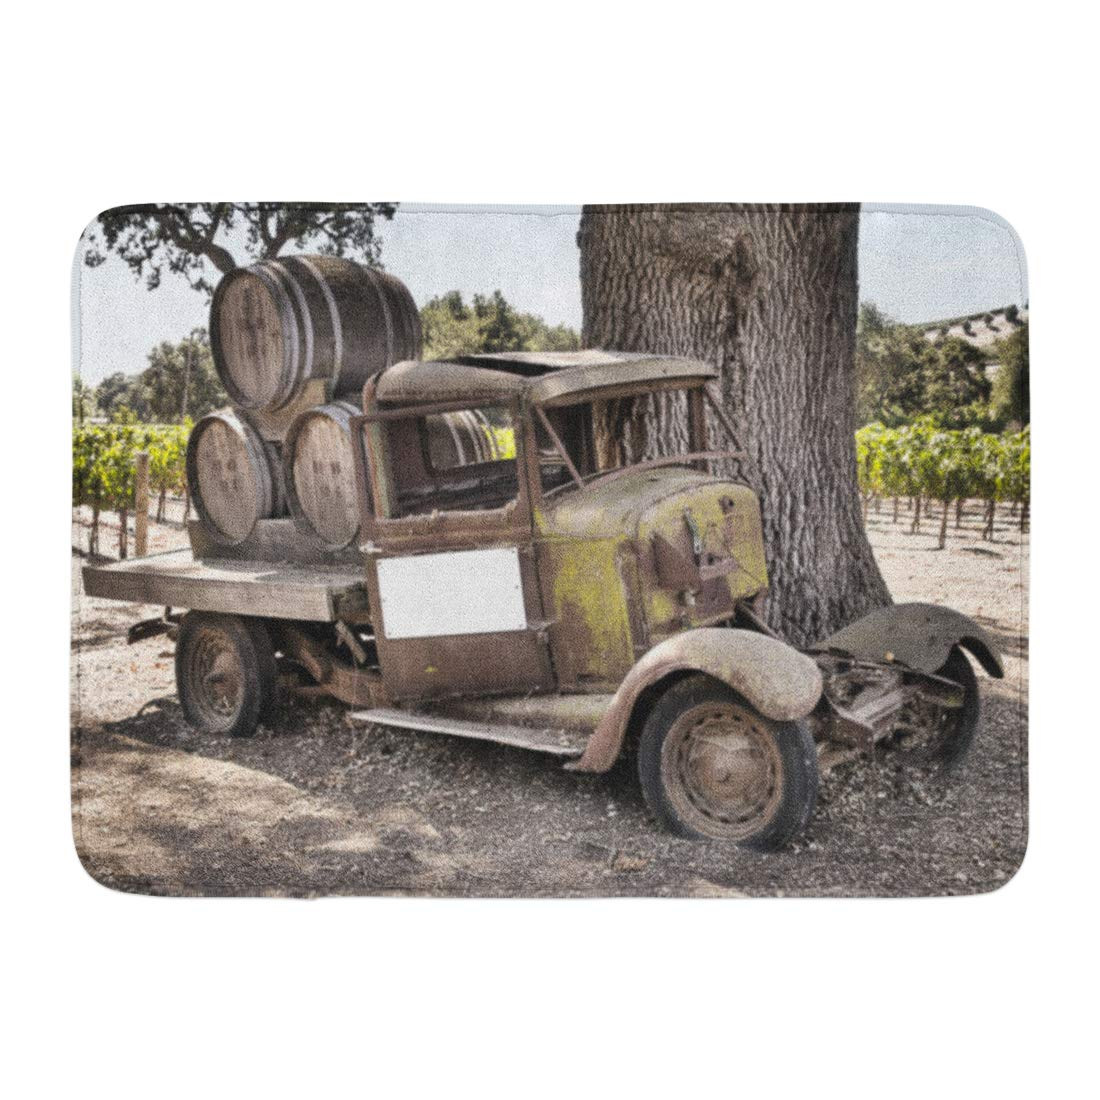 Aabagael Bath Mat America Old Historic Wine Truck in the Back Country of Santa Barbara California Car Vehicle Bathroom Decor Rug 16'' x 24''